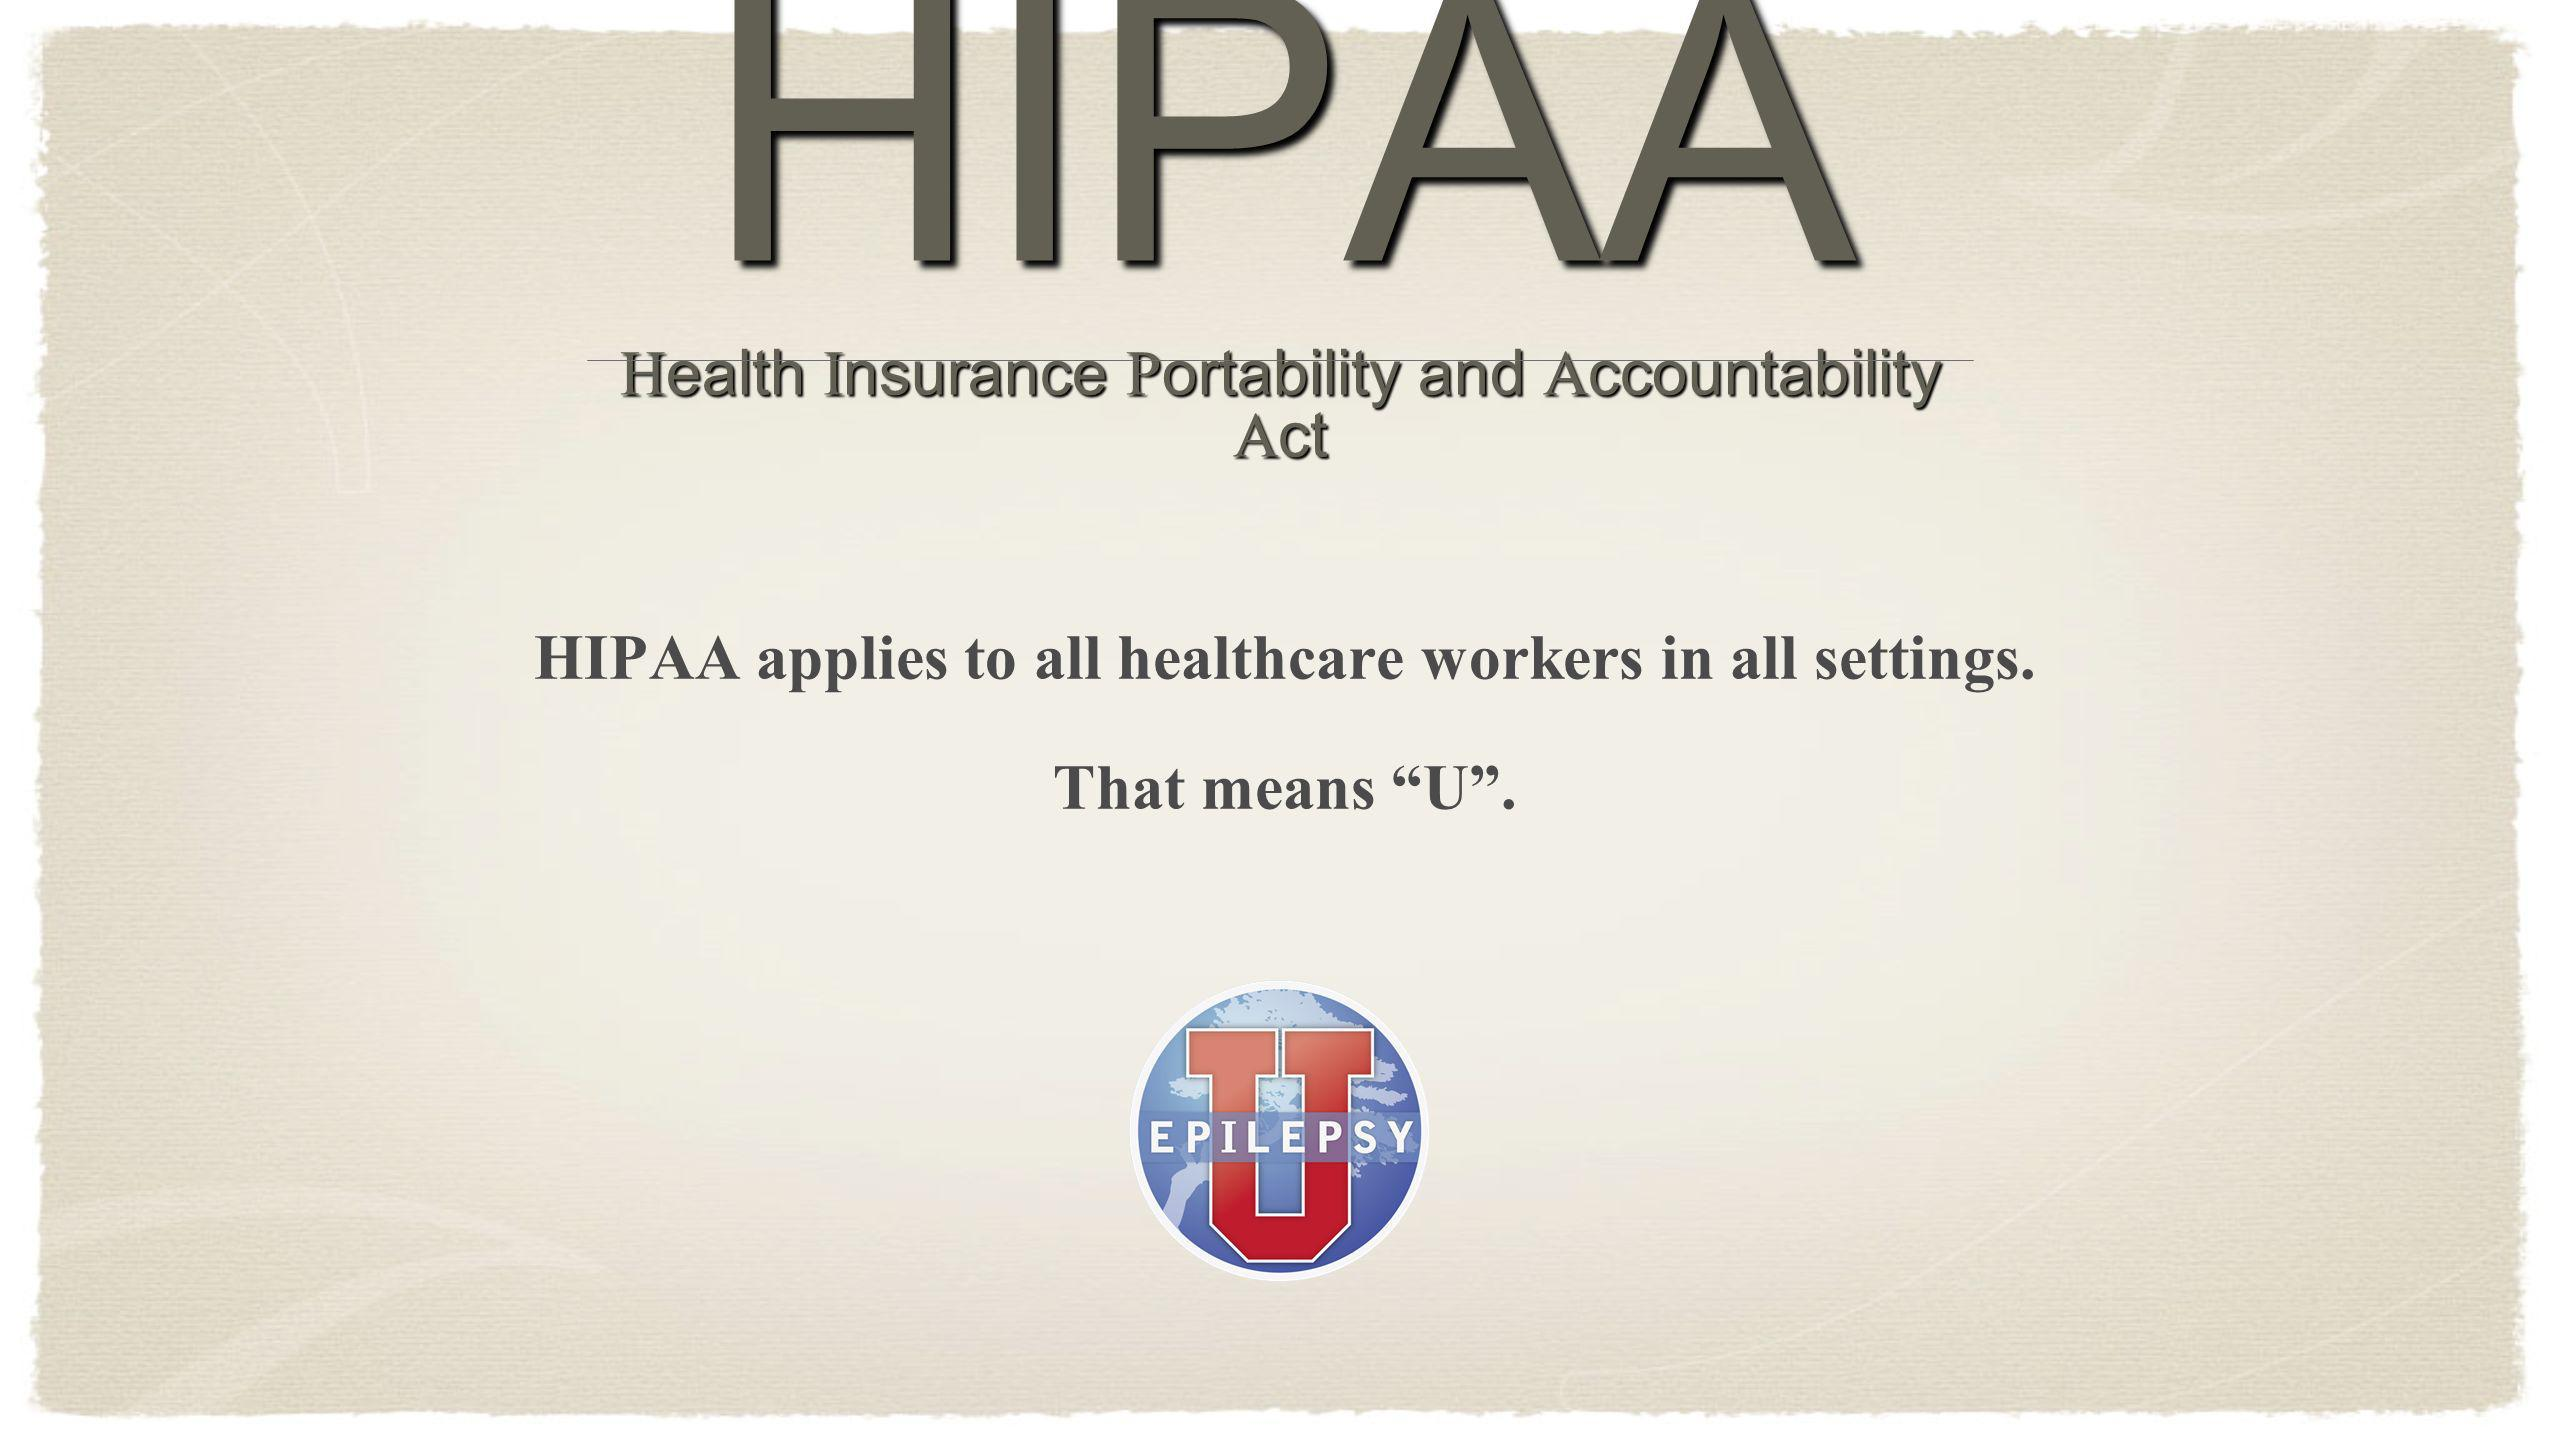 HIPAA Health Insurance Portability and Accountability Act